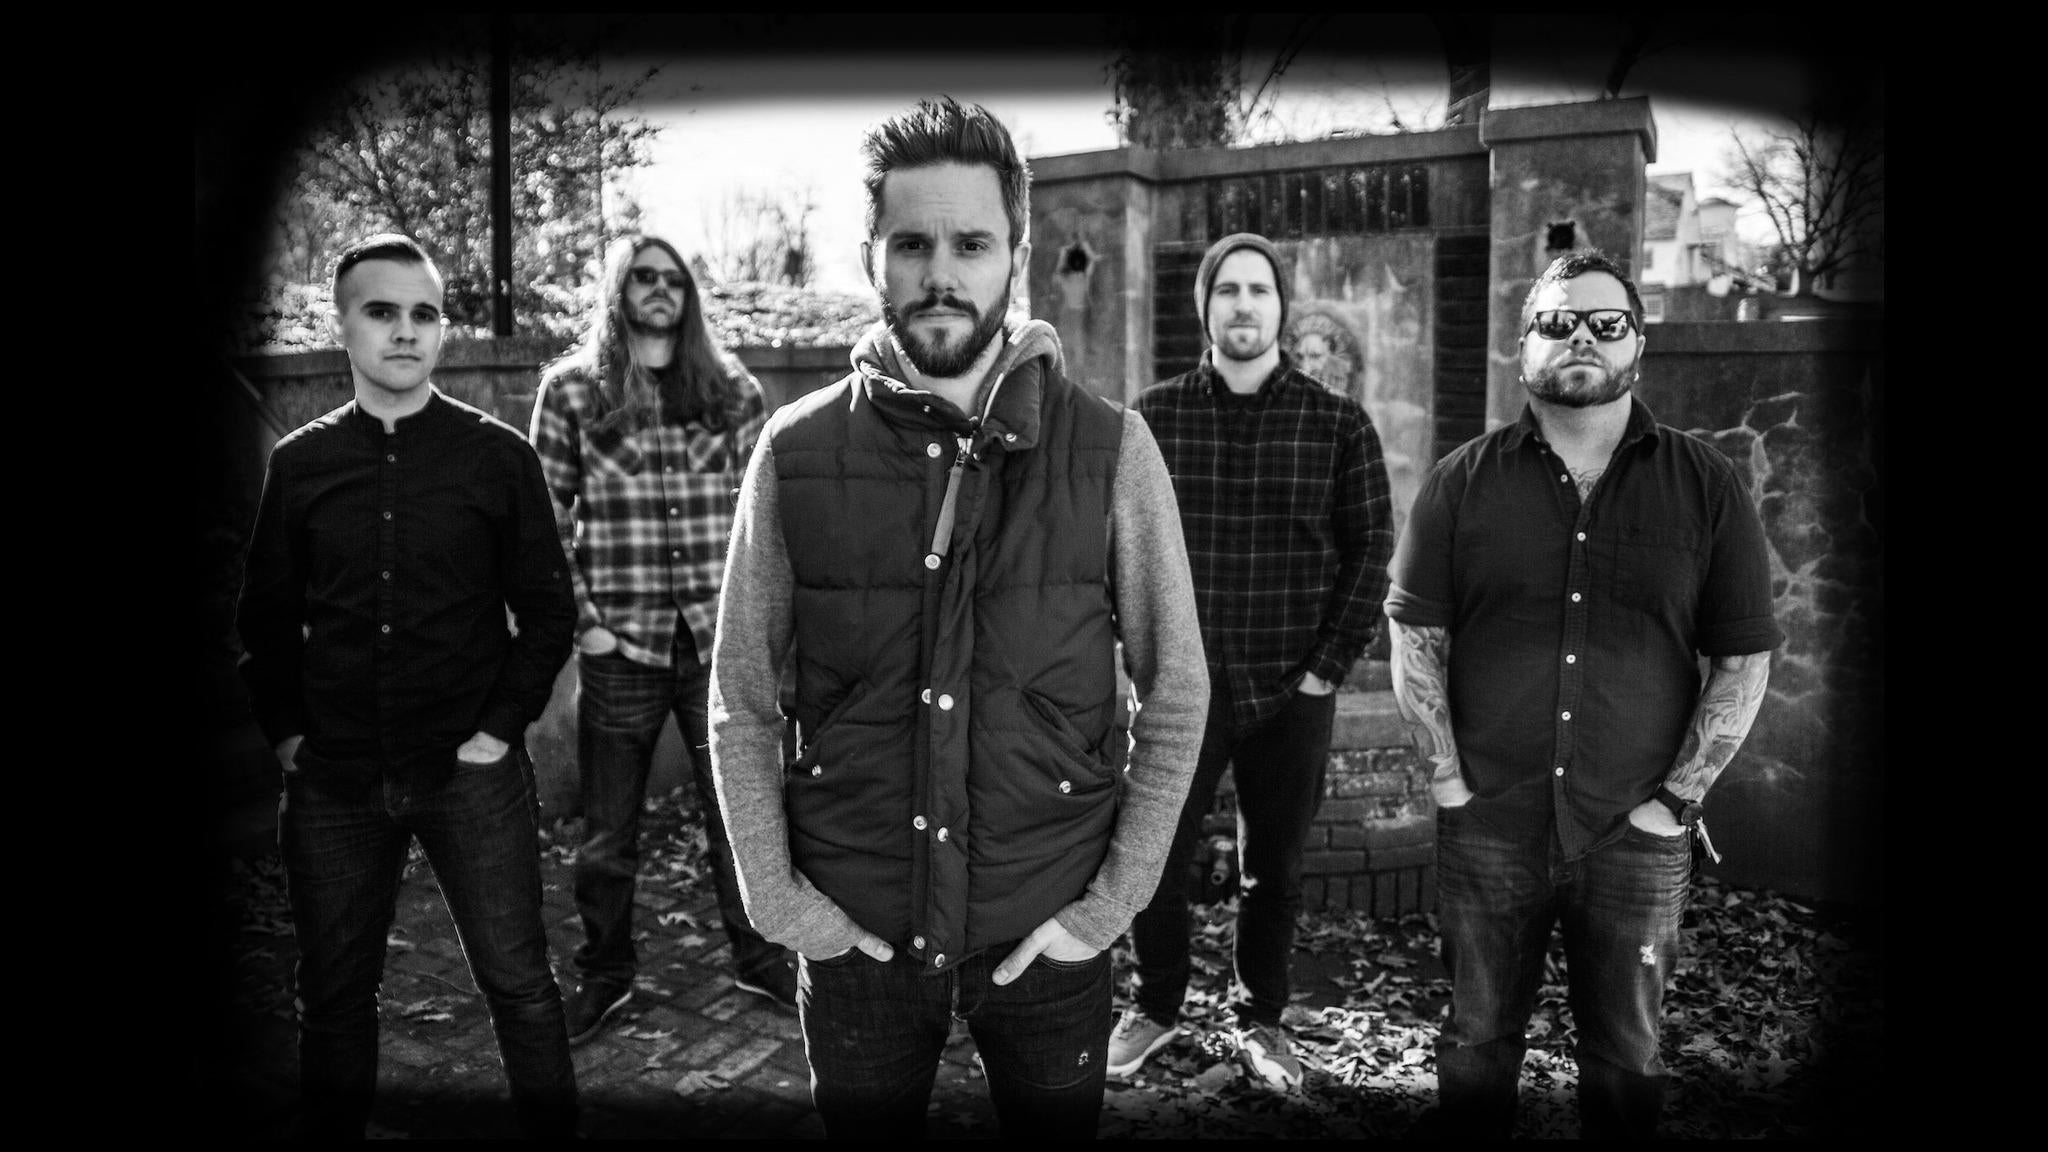 Between The Buried And Me with TesseracT at The Queen